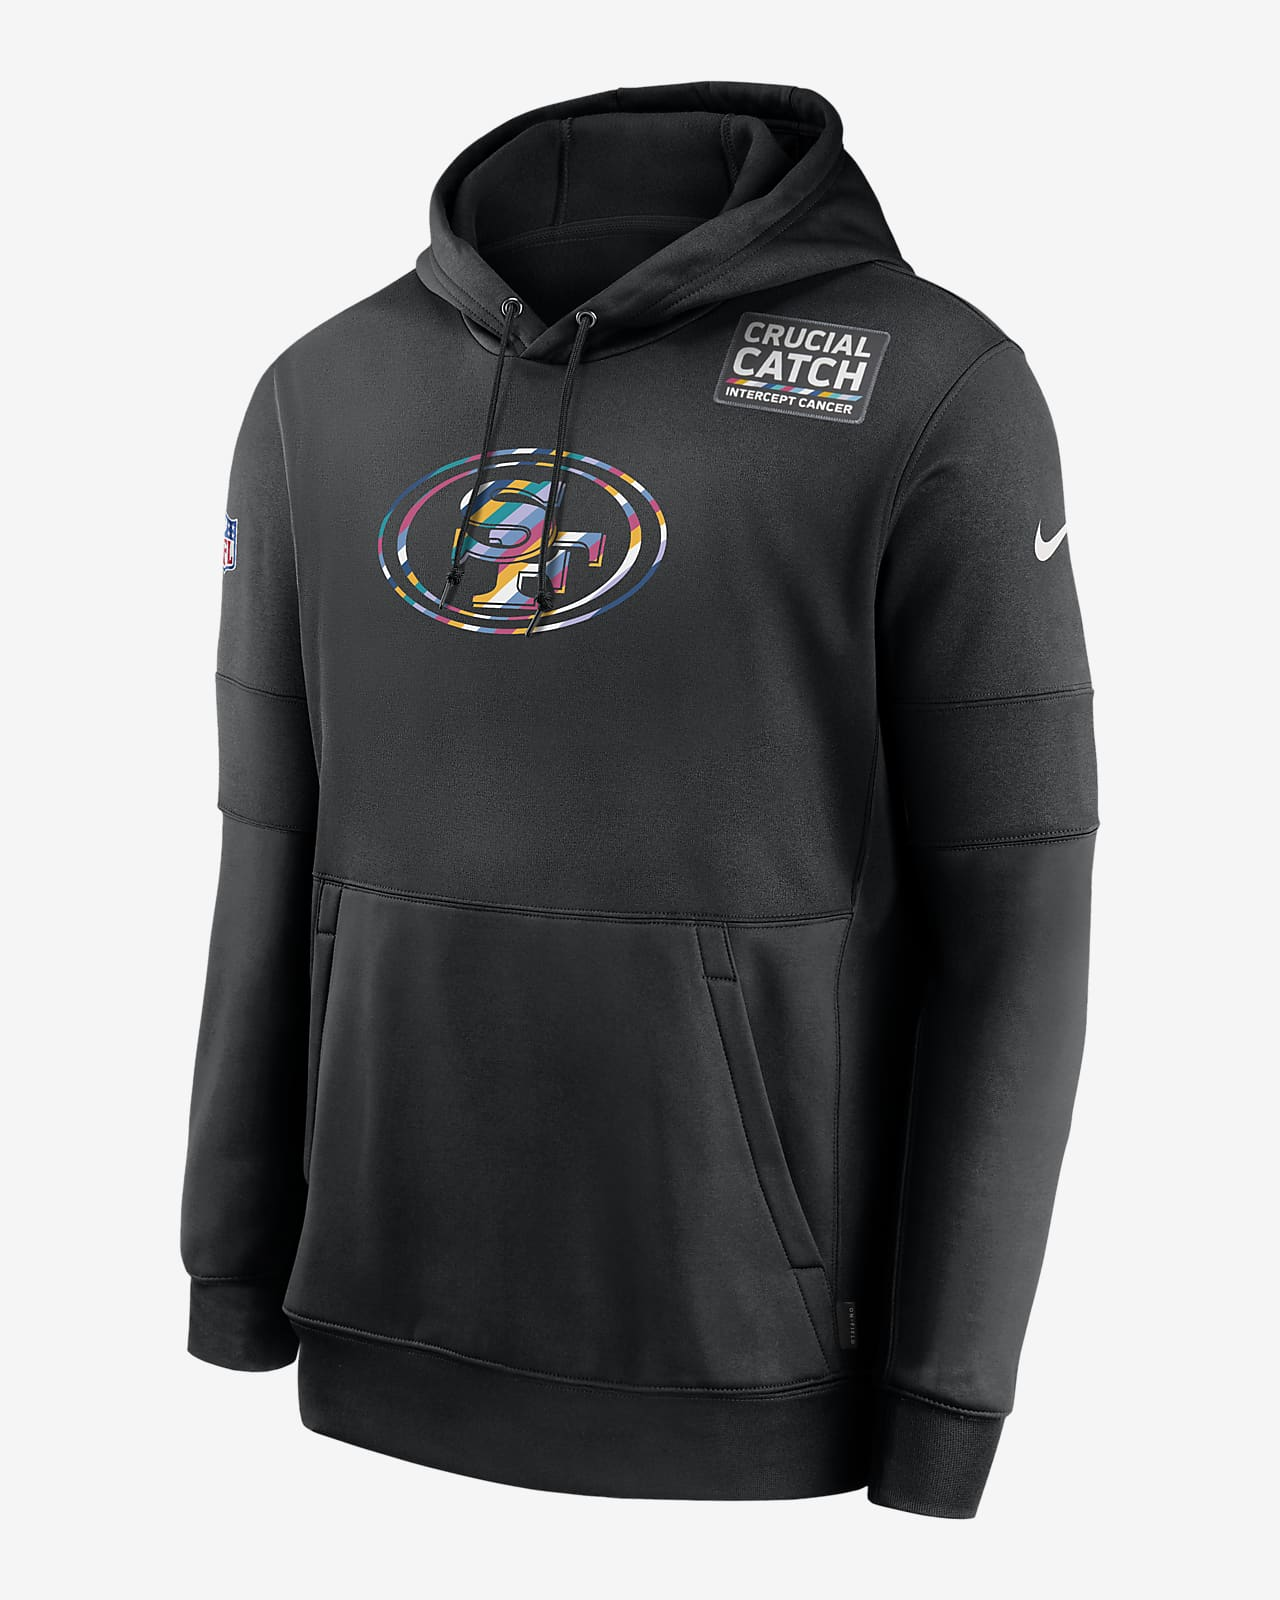 Nike Therma Crucial Catch (NFL 49ers) Men's Hoodie